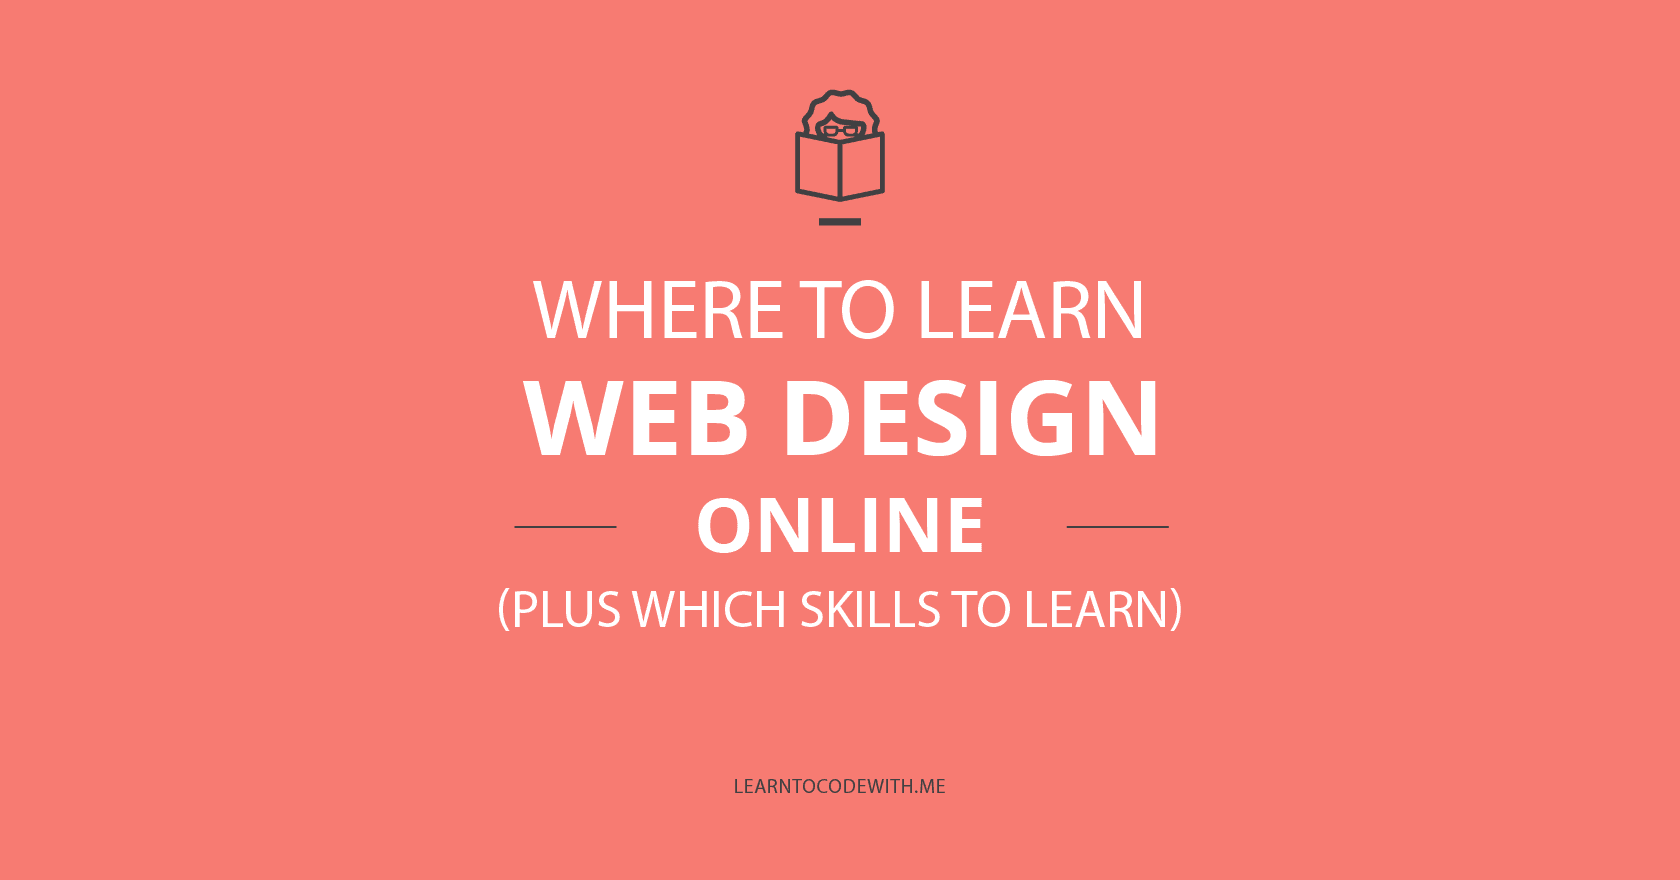 Where-to-learn-web-design-online